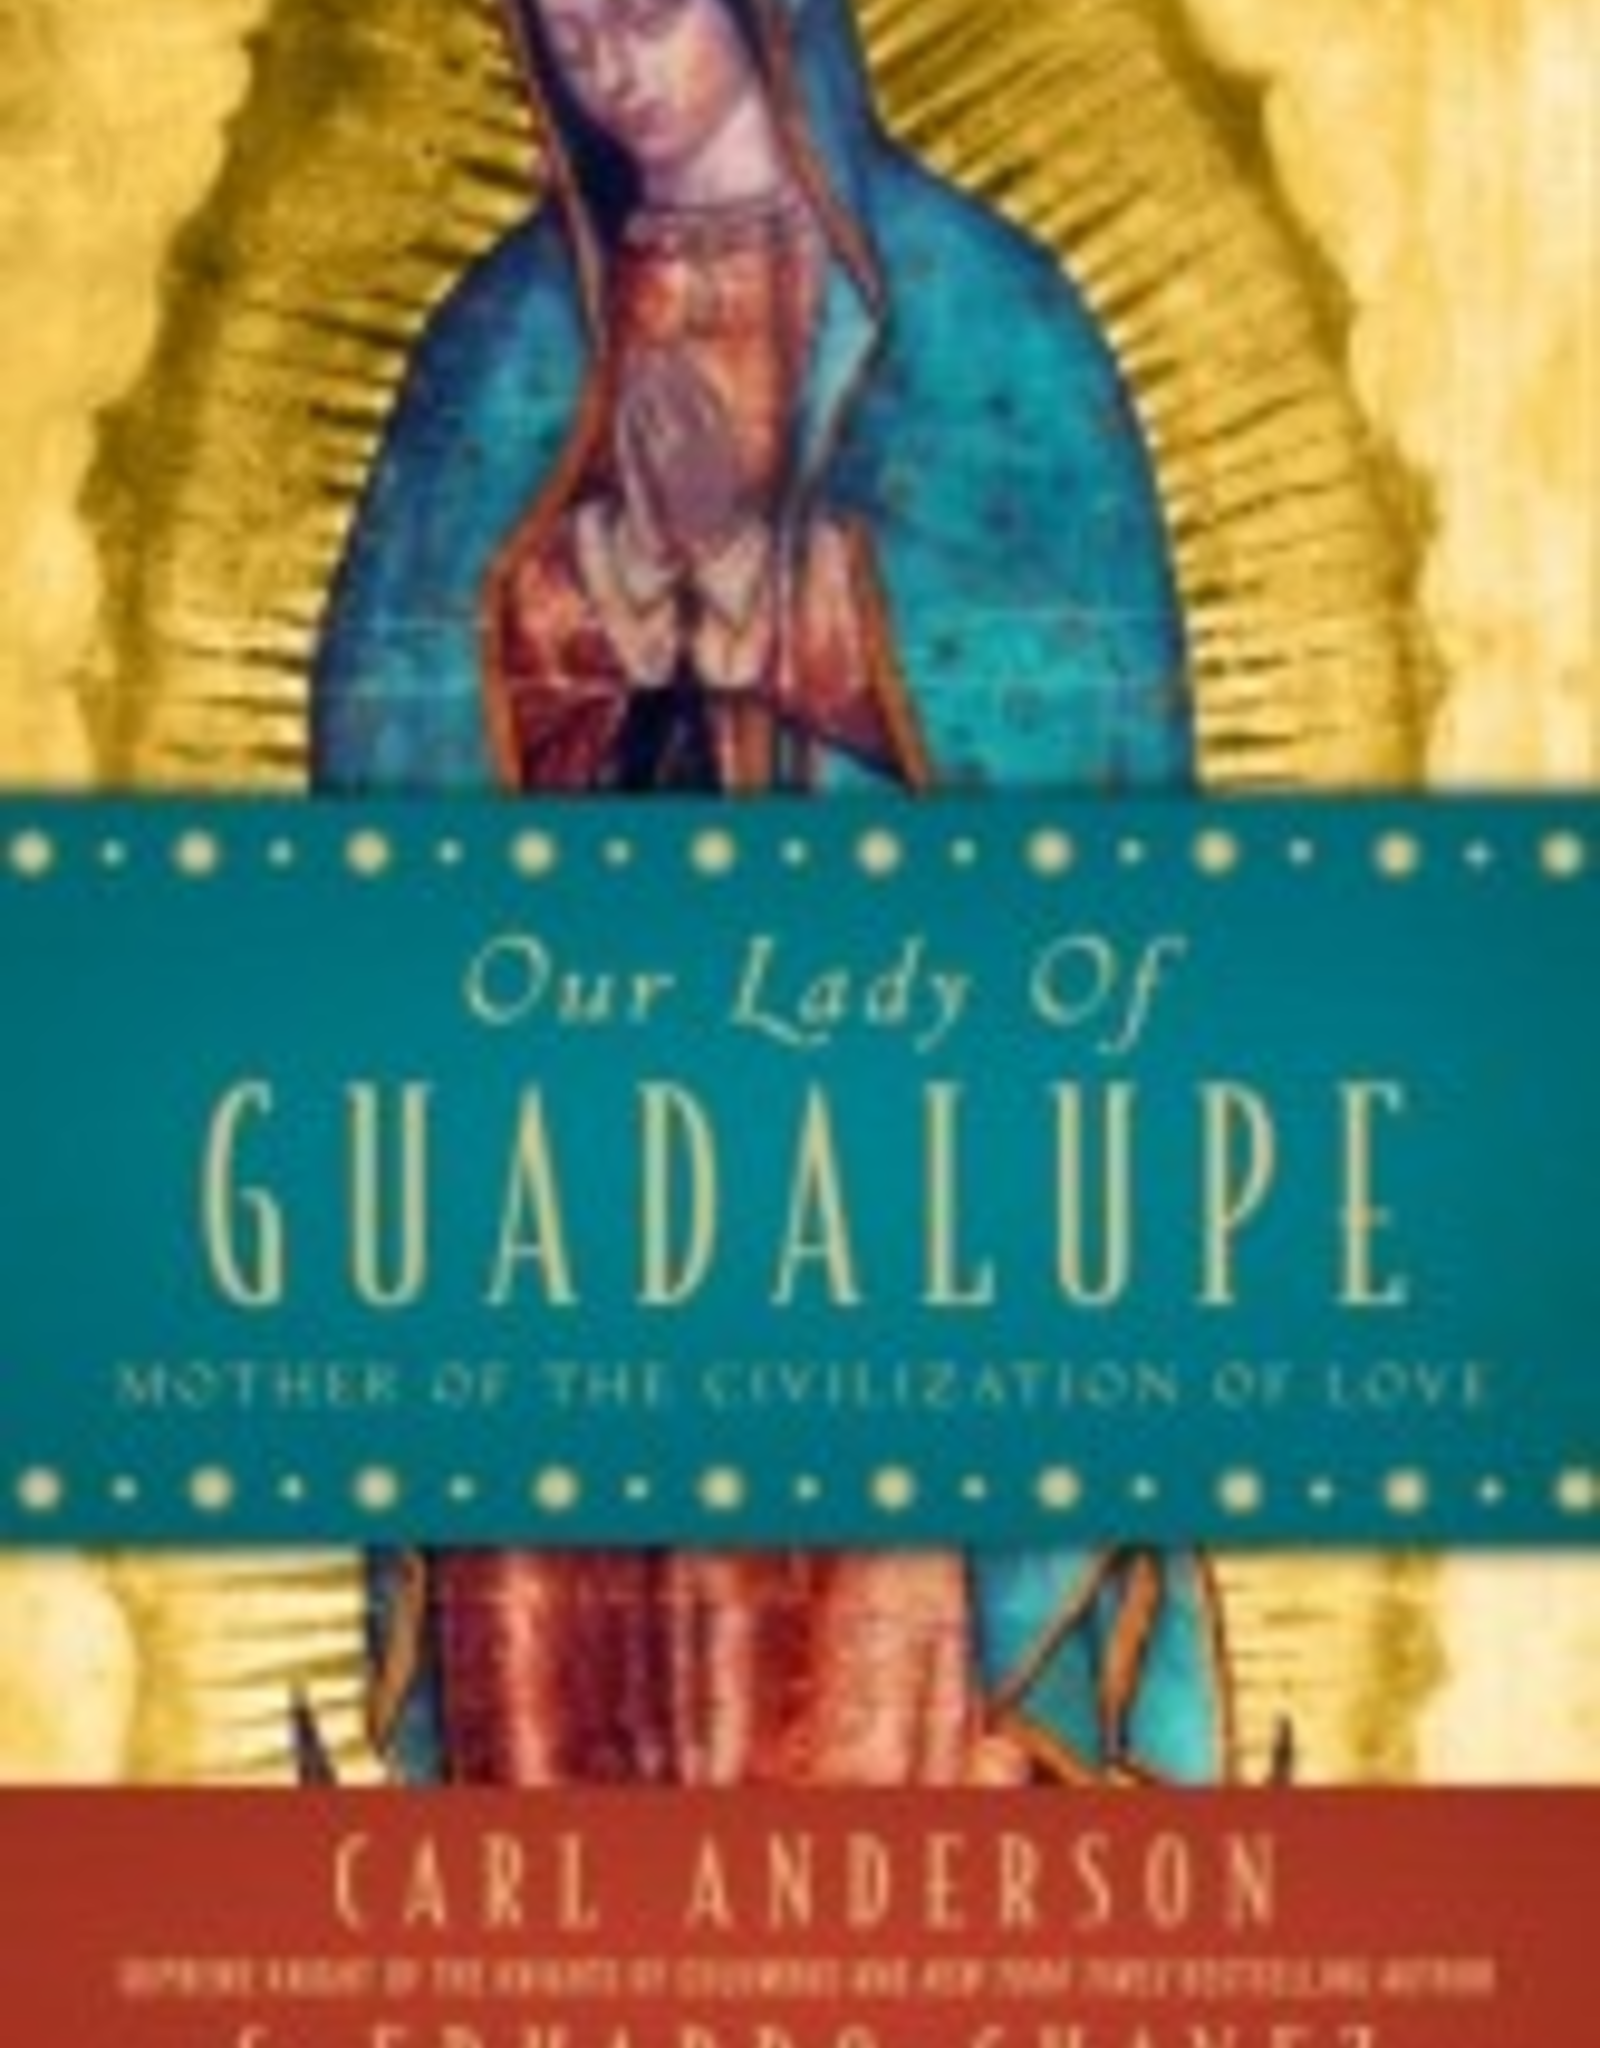 Random House Our Lady of Guadalupe: Mother of the Civilization of Love, by Carl Anderson and Eduardo Chavez ( hardcover)